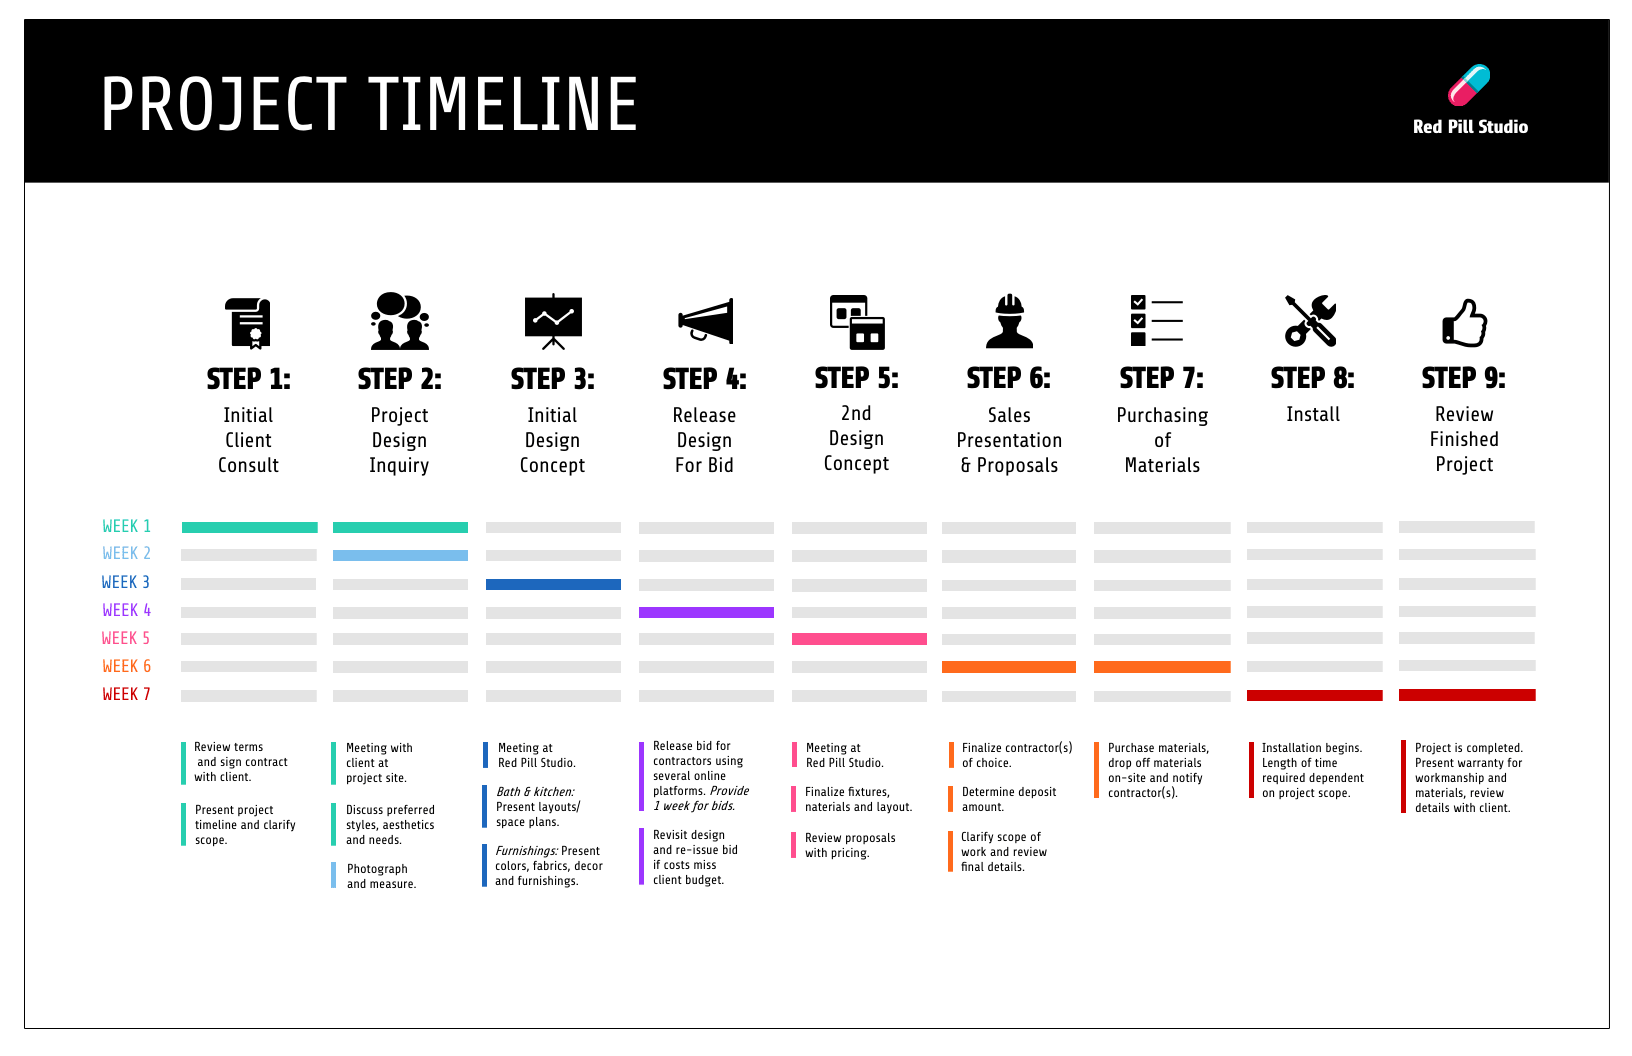 project timeline infographic template